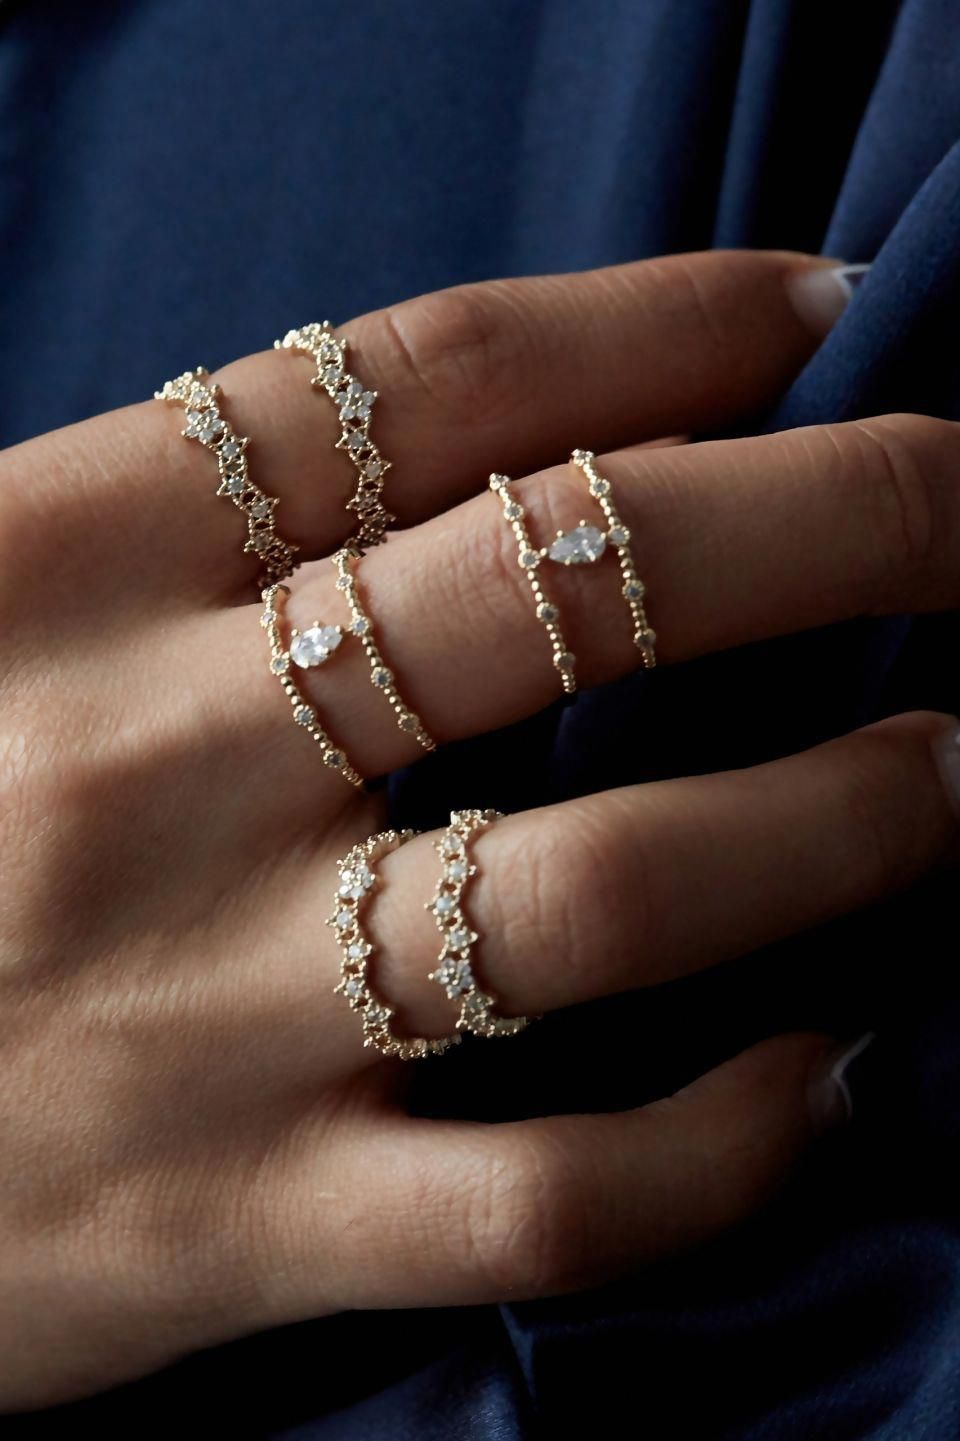 Best gold ring 5343 goldring  Finest Quality Rings in 2019  Pinterest  Jewelry Rings and